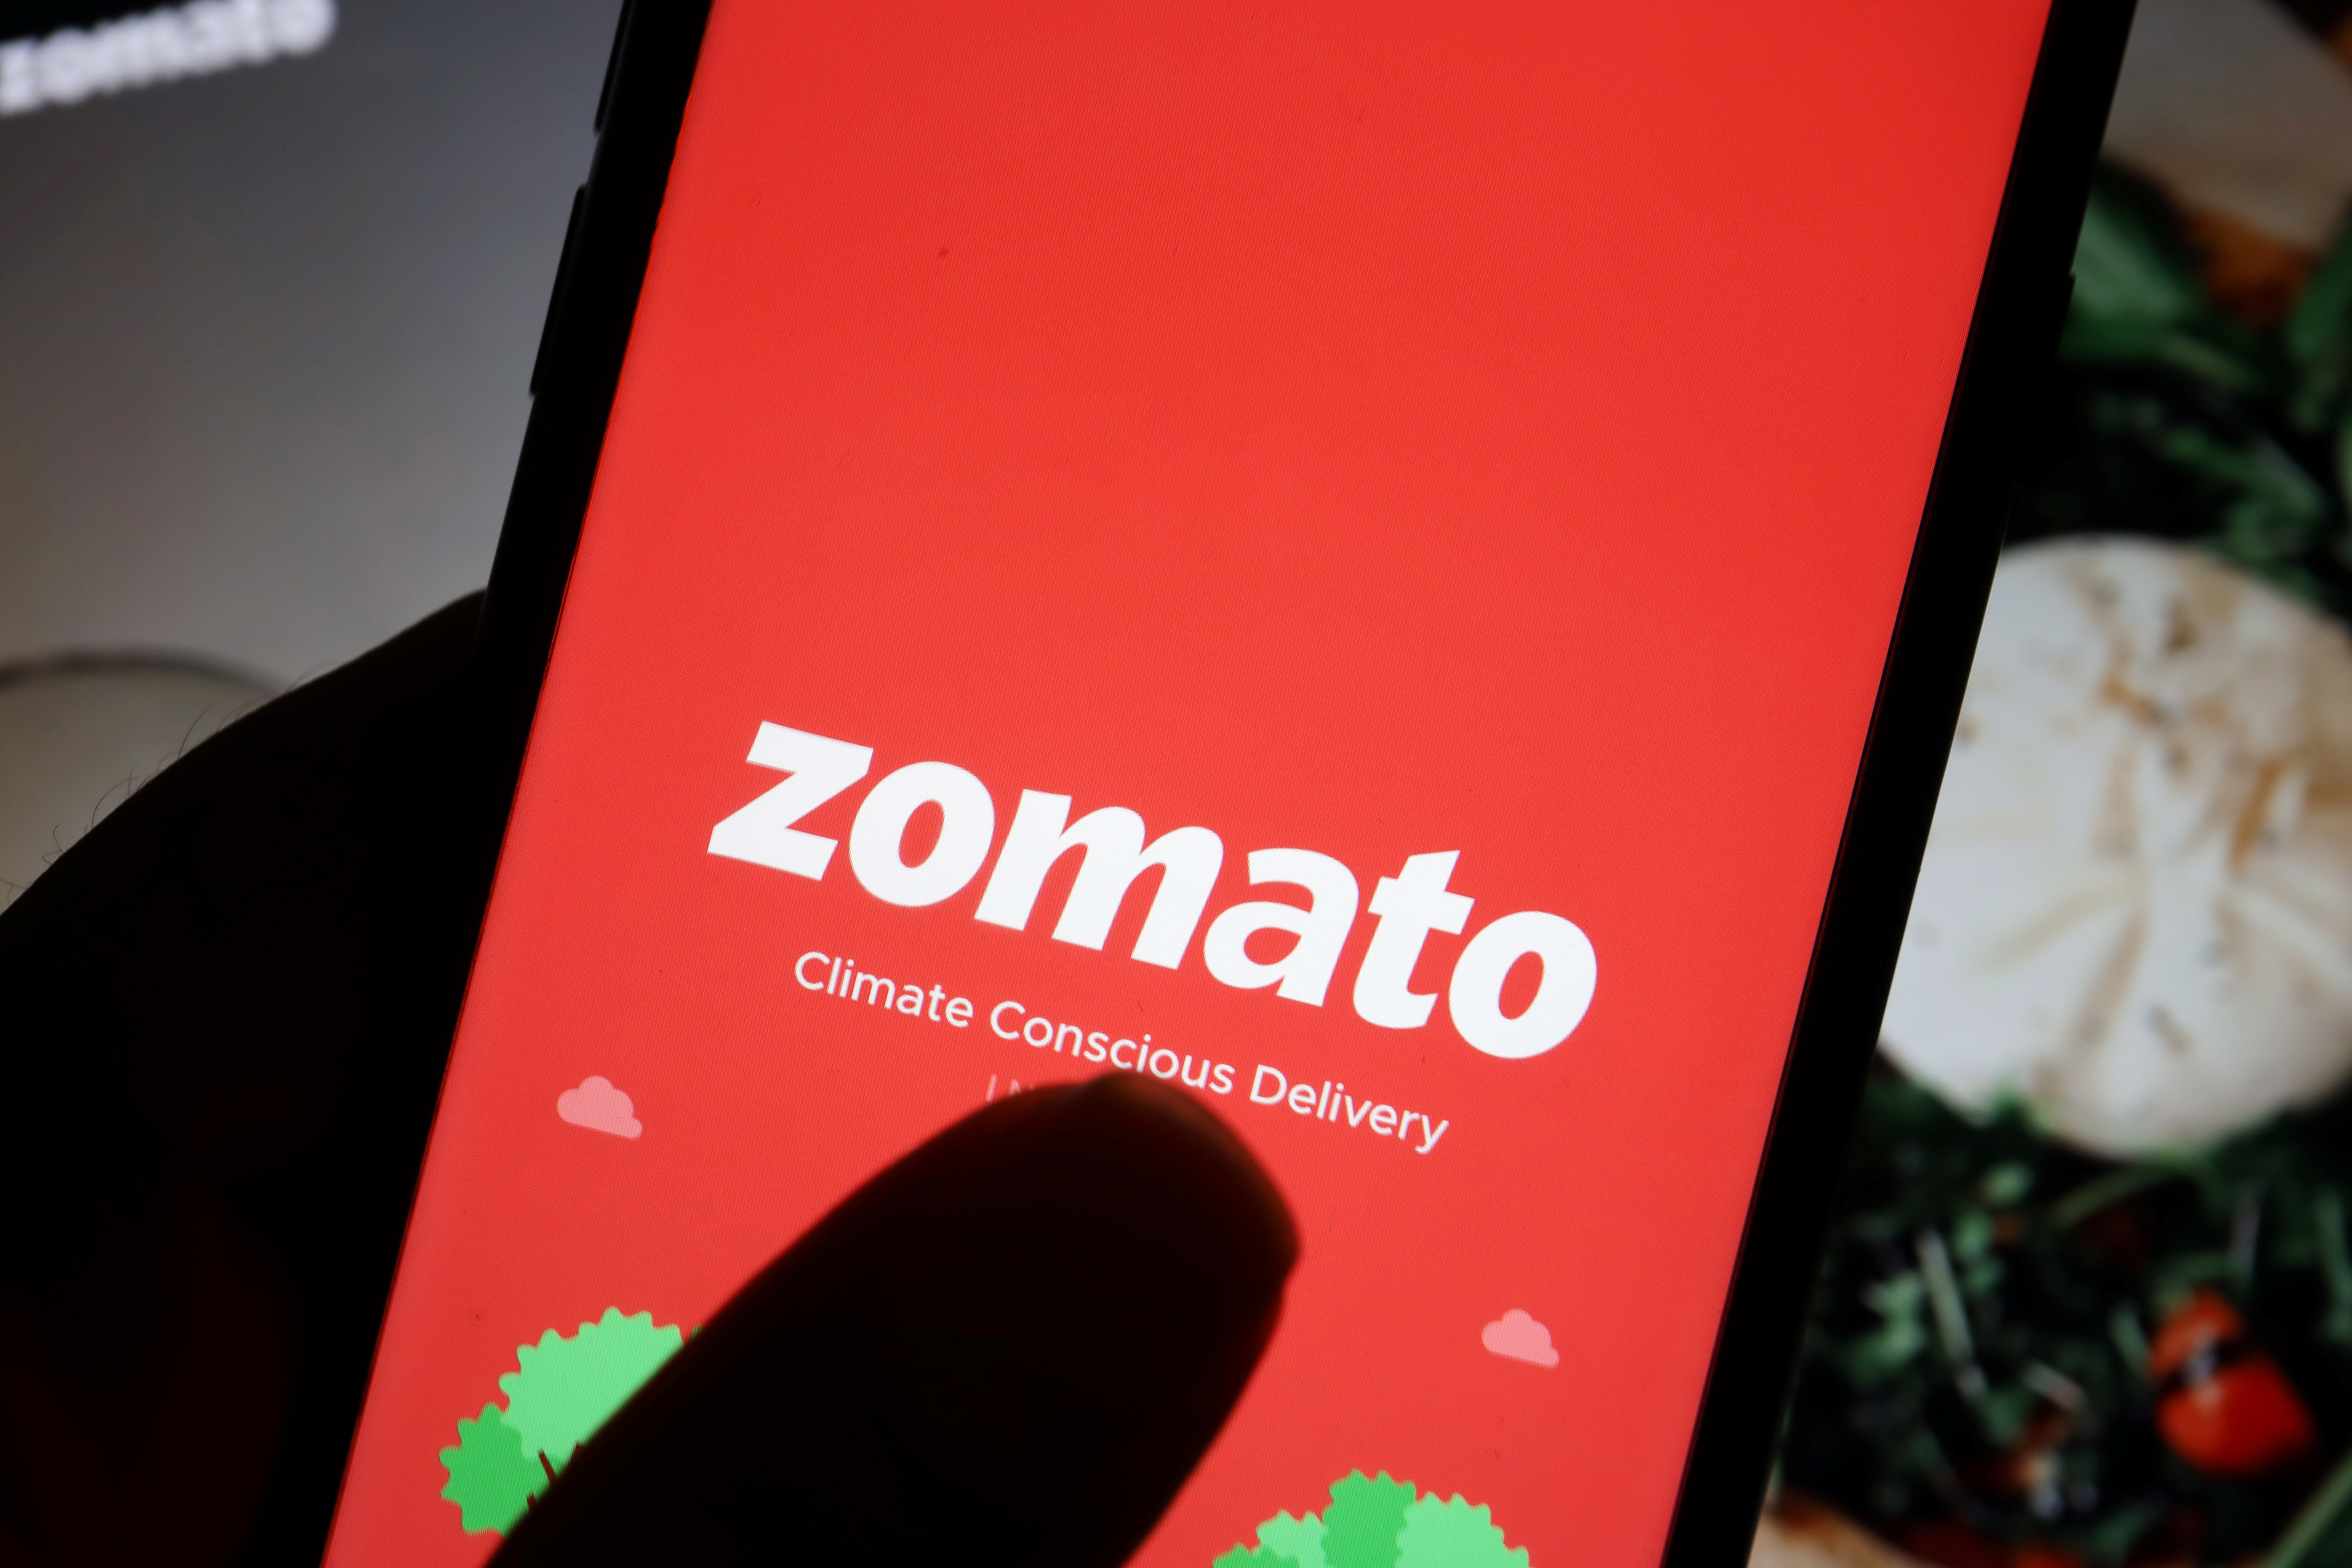 The logo of Indian food delivery company Zomato is seen on its app on a mobile phone displayed in front of its company website in this illustration picture taken July 14, 2021. REUTERS/Florence Lo/Illustration